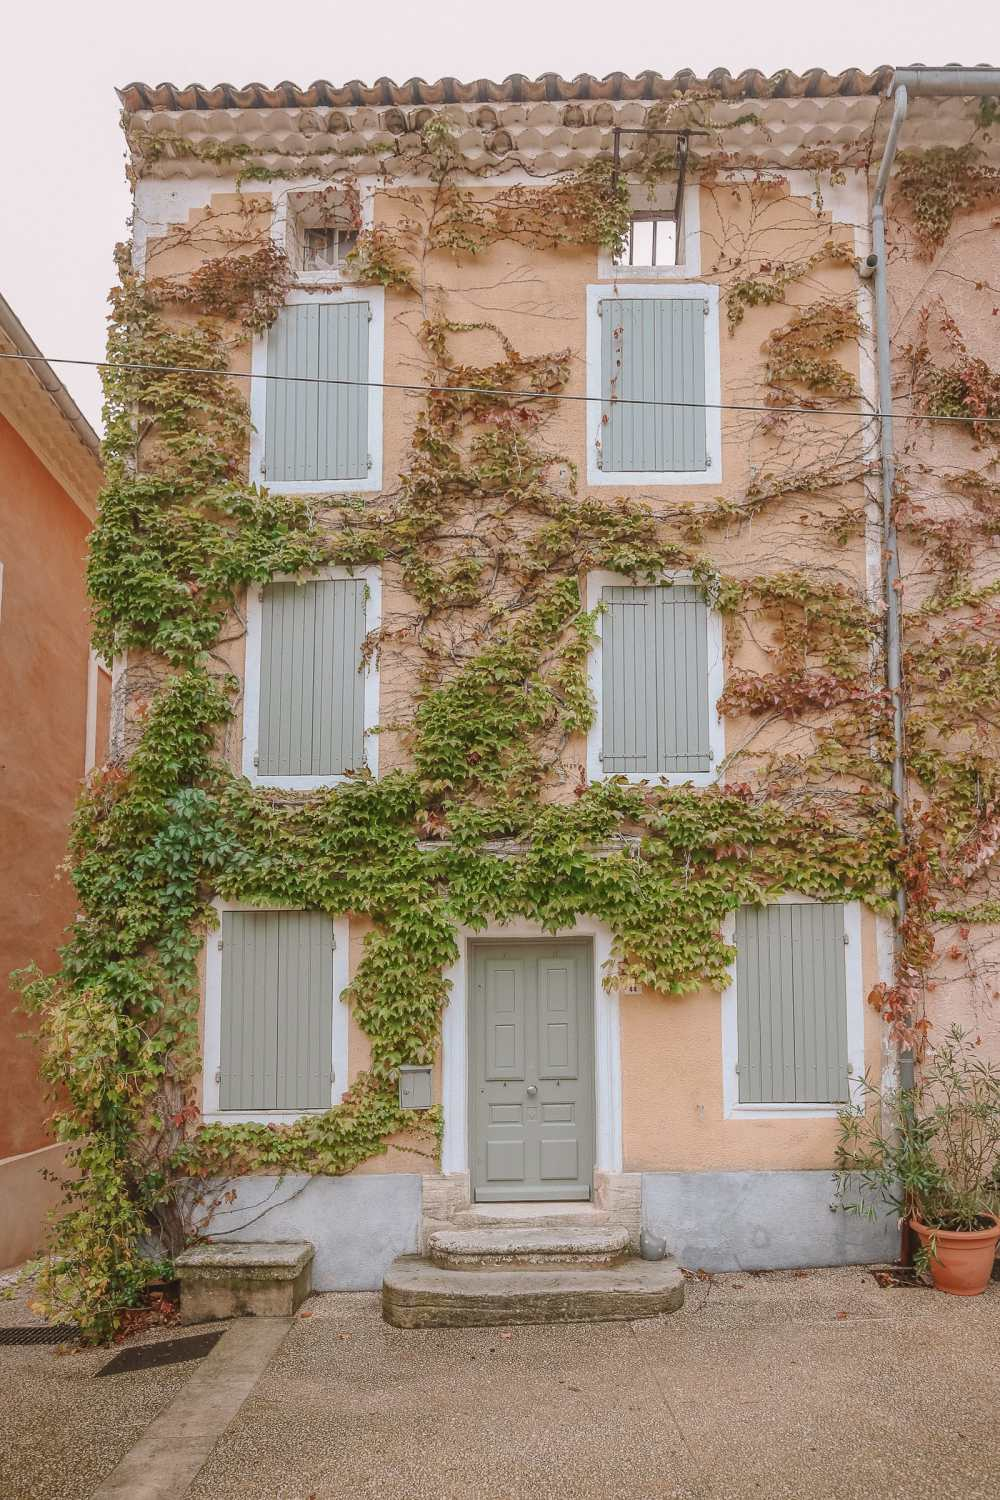 The Pretty Little Villages Of Provence, France